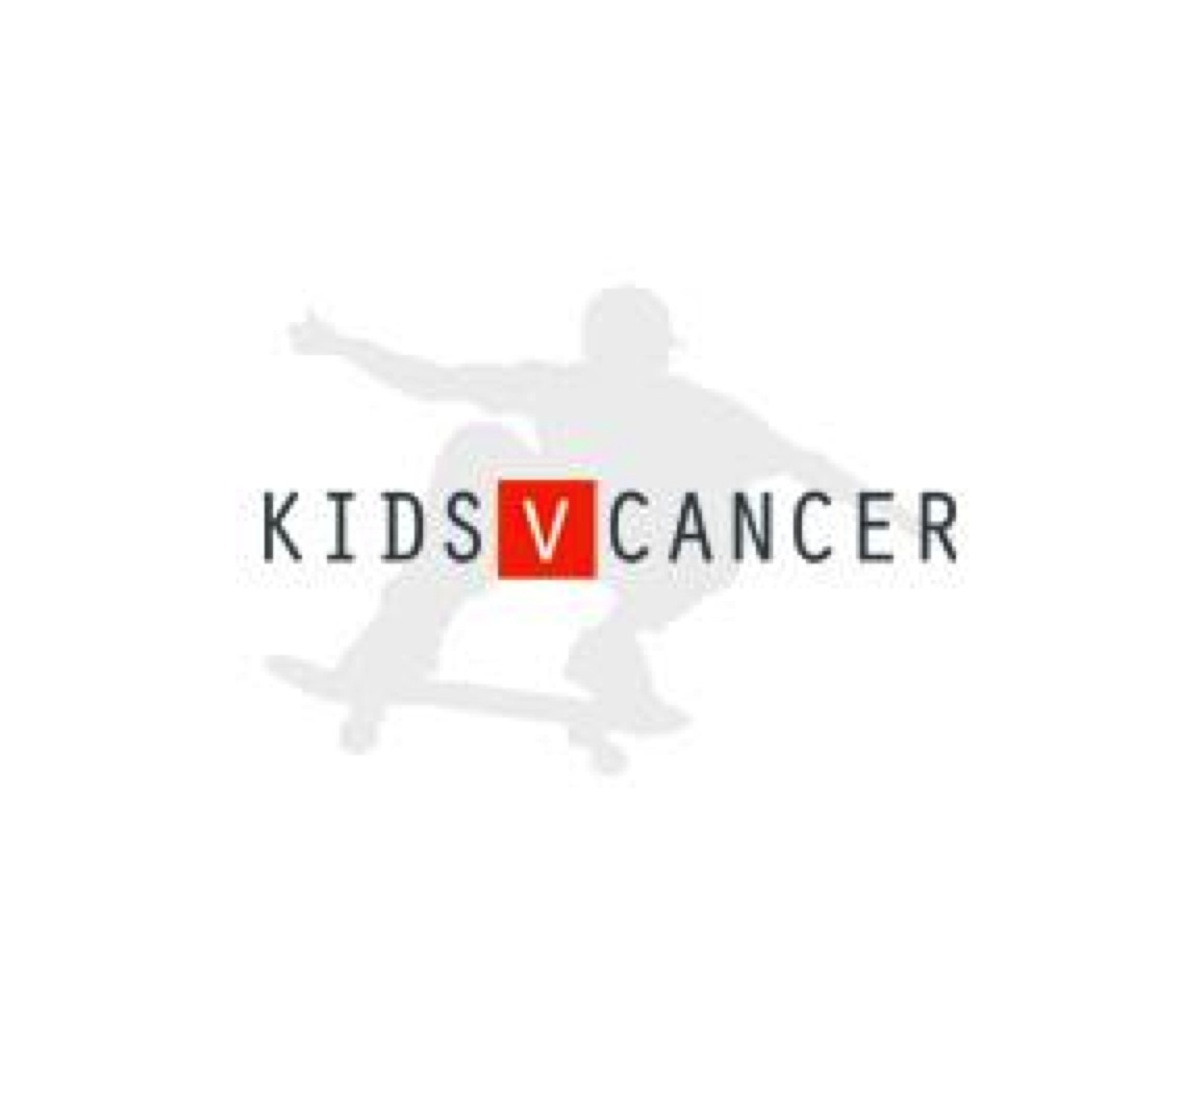 Kids V Cancer